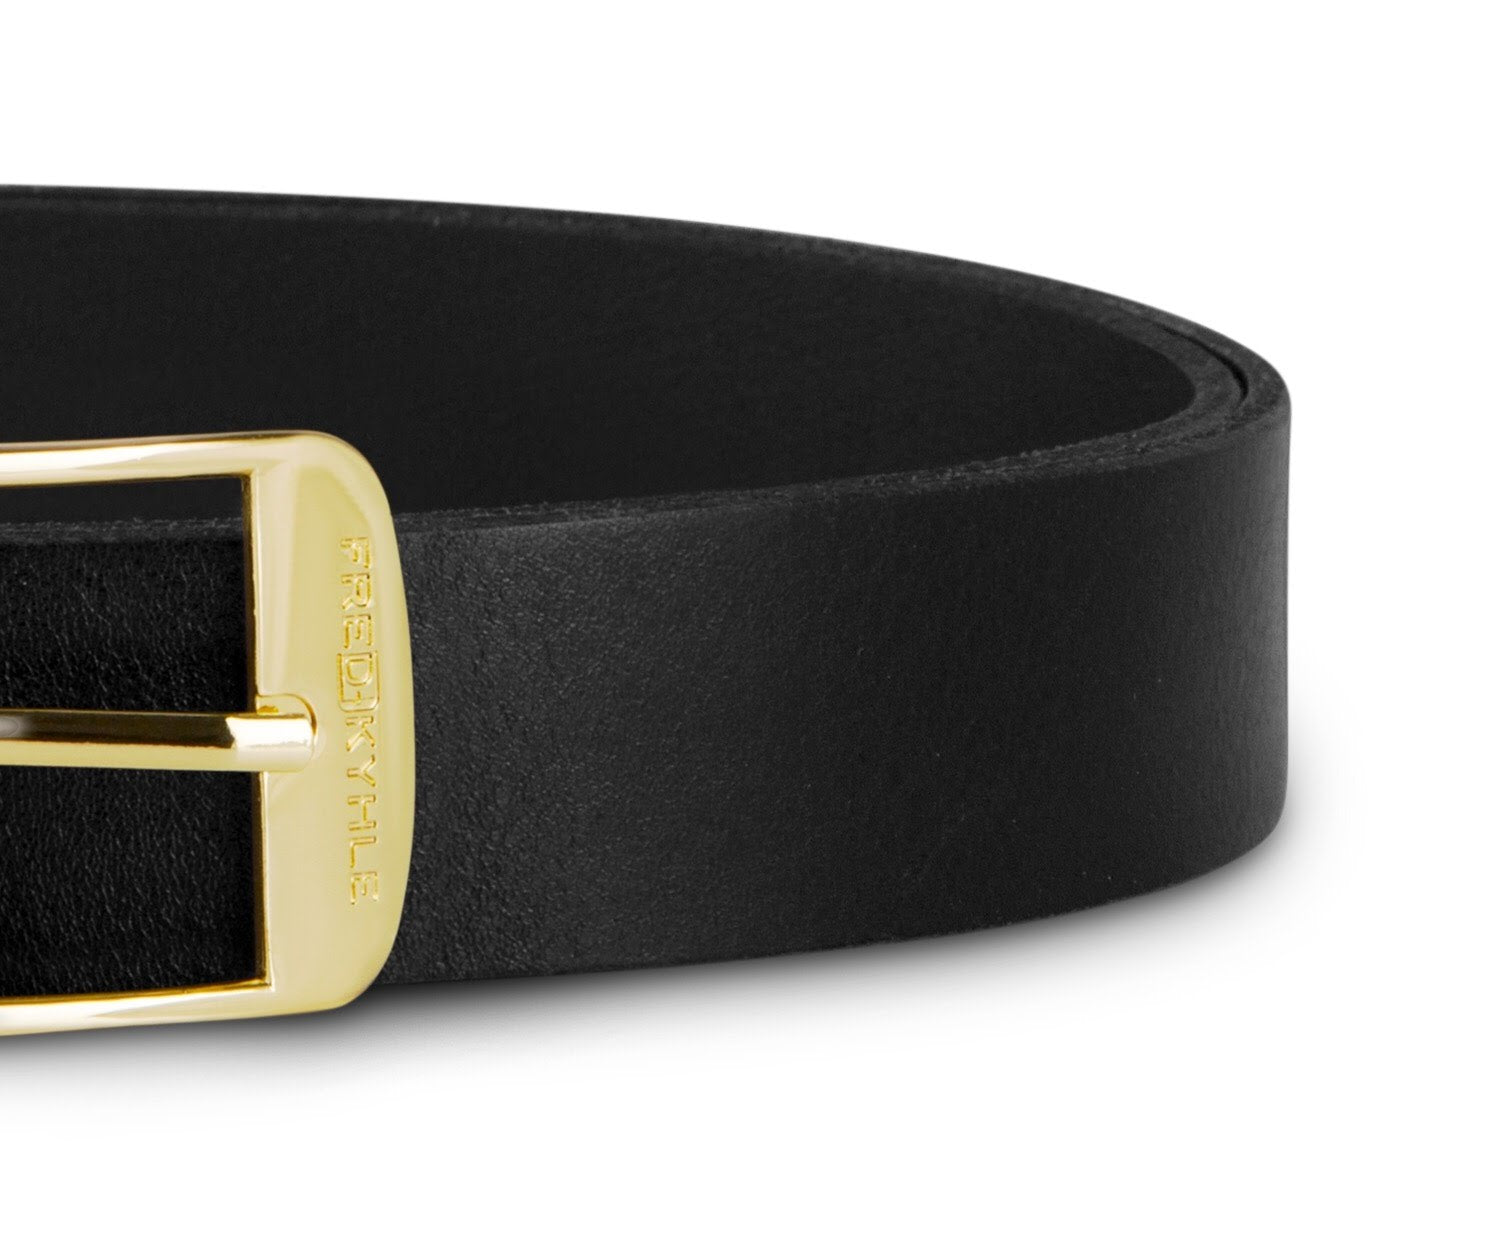 Black Leather with Golden Buckle